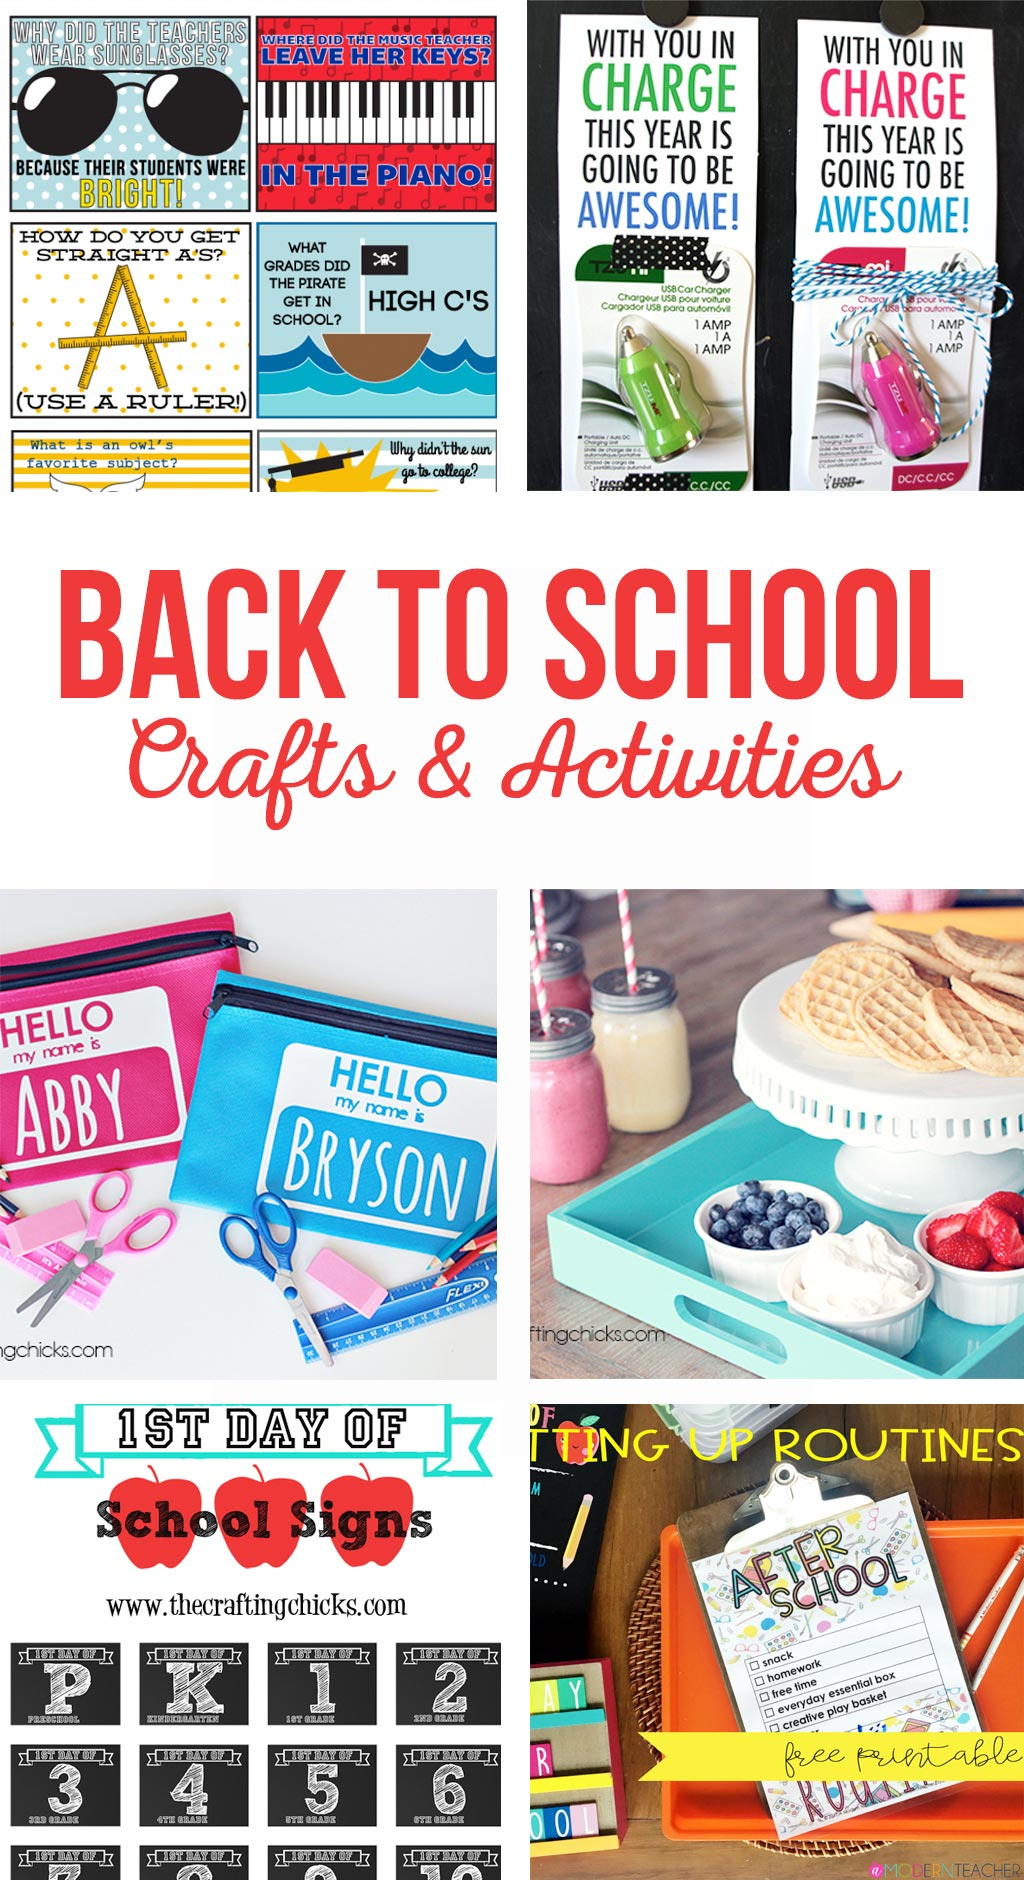 Back to School Crafts and Activities - The Crafting Chicks